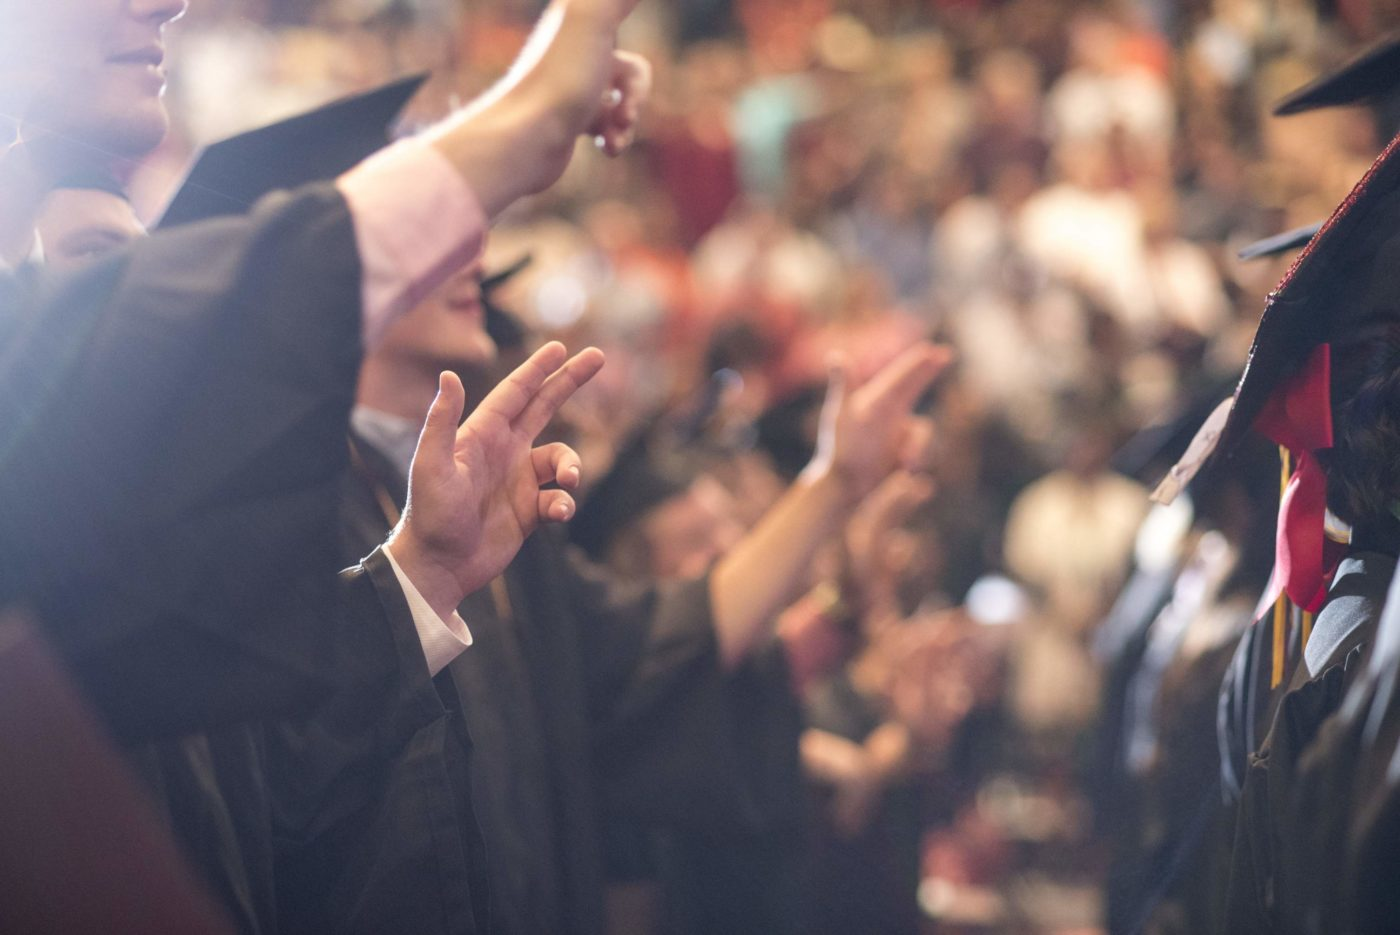 Graduation – Graduates Hands In Air